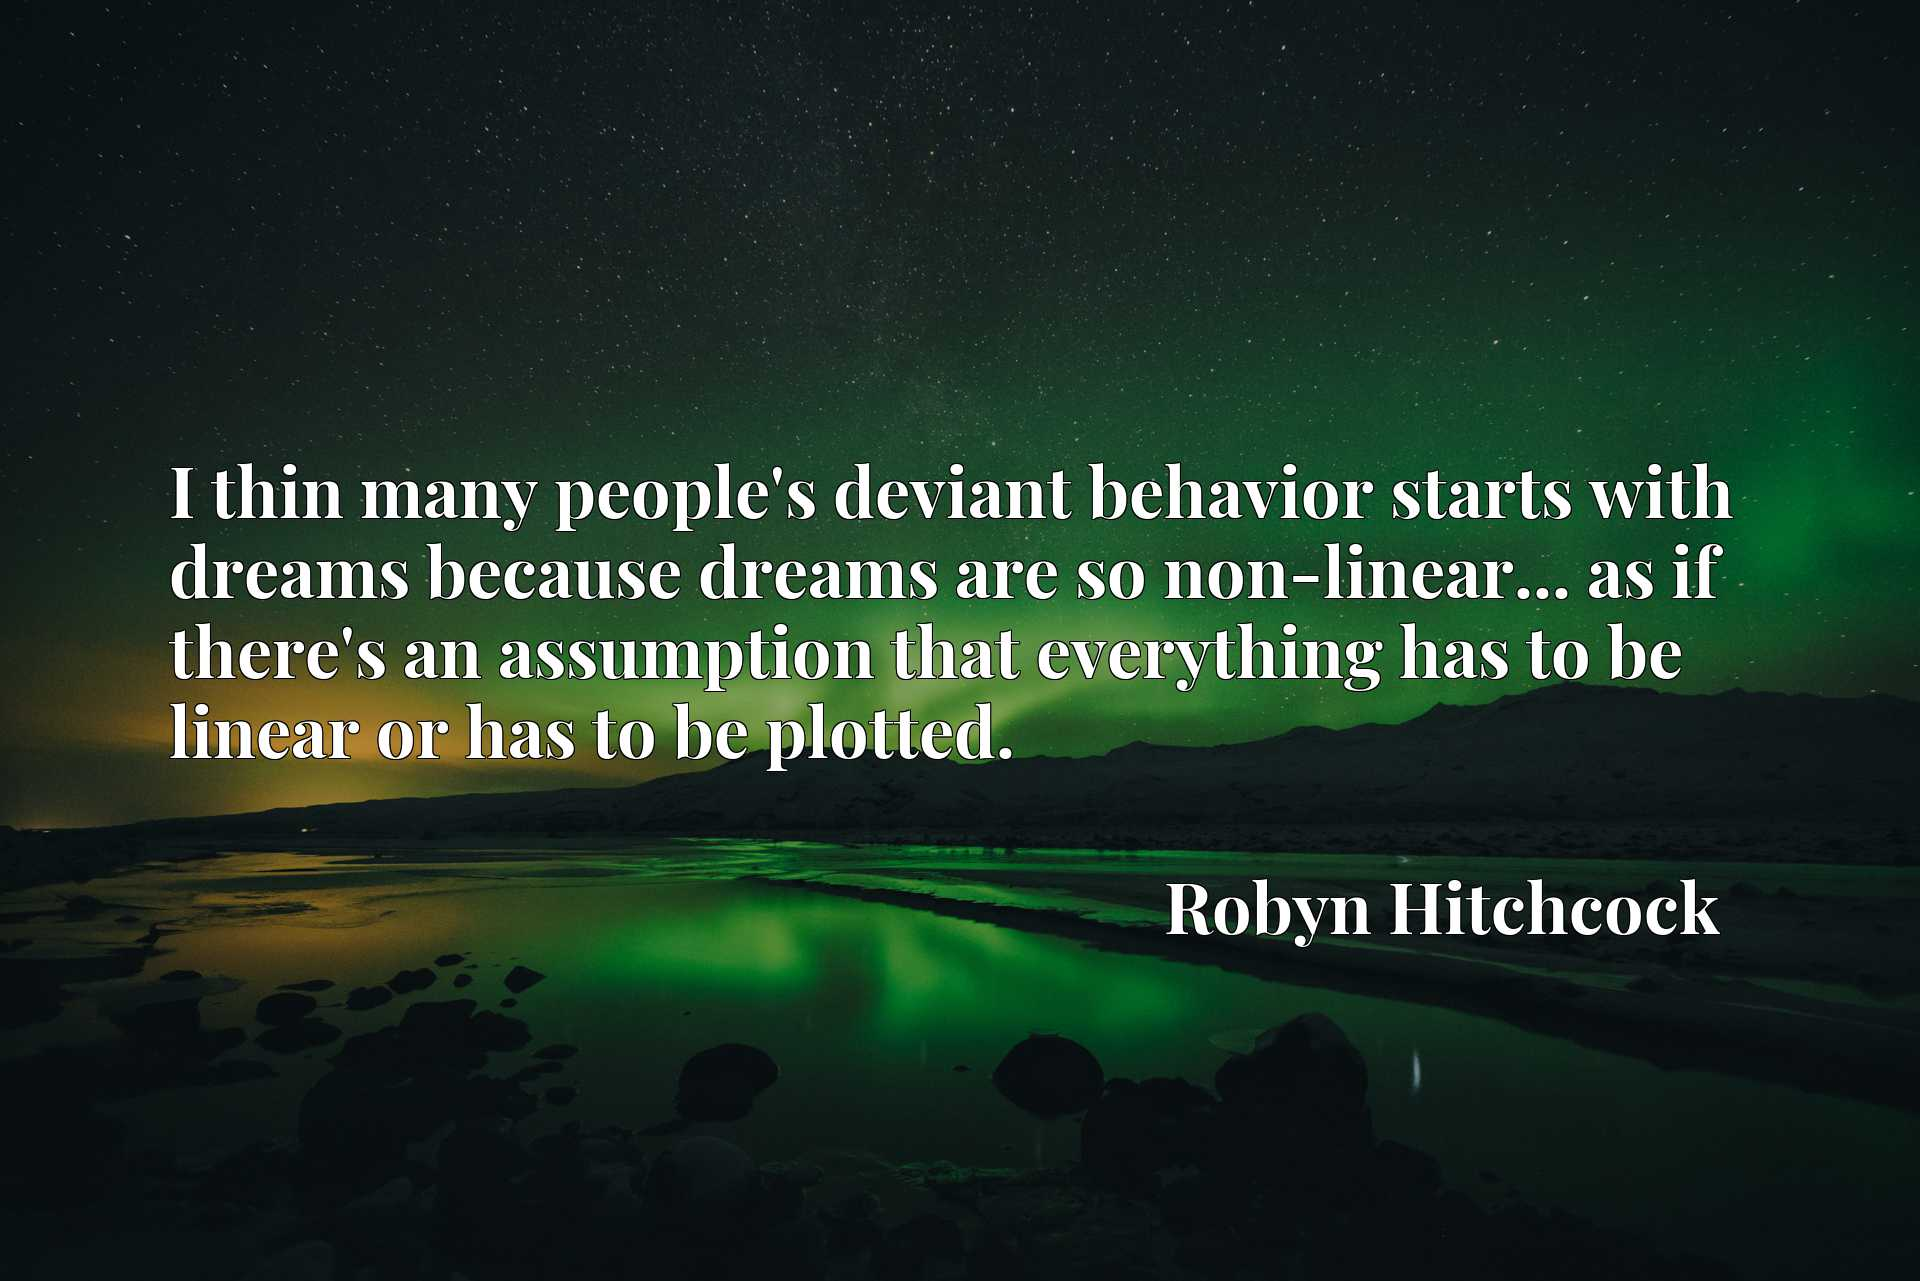 I thin many people's deviant behavior starts with dreams because dreams are so non-linear... as if there's an assumption that everything has to be linear or has to be plotted.